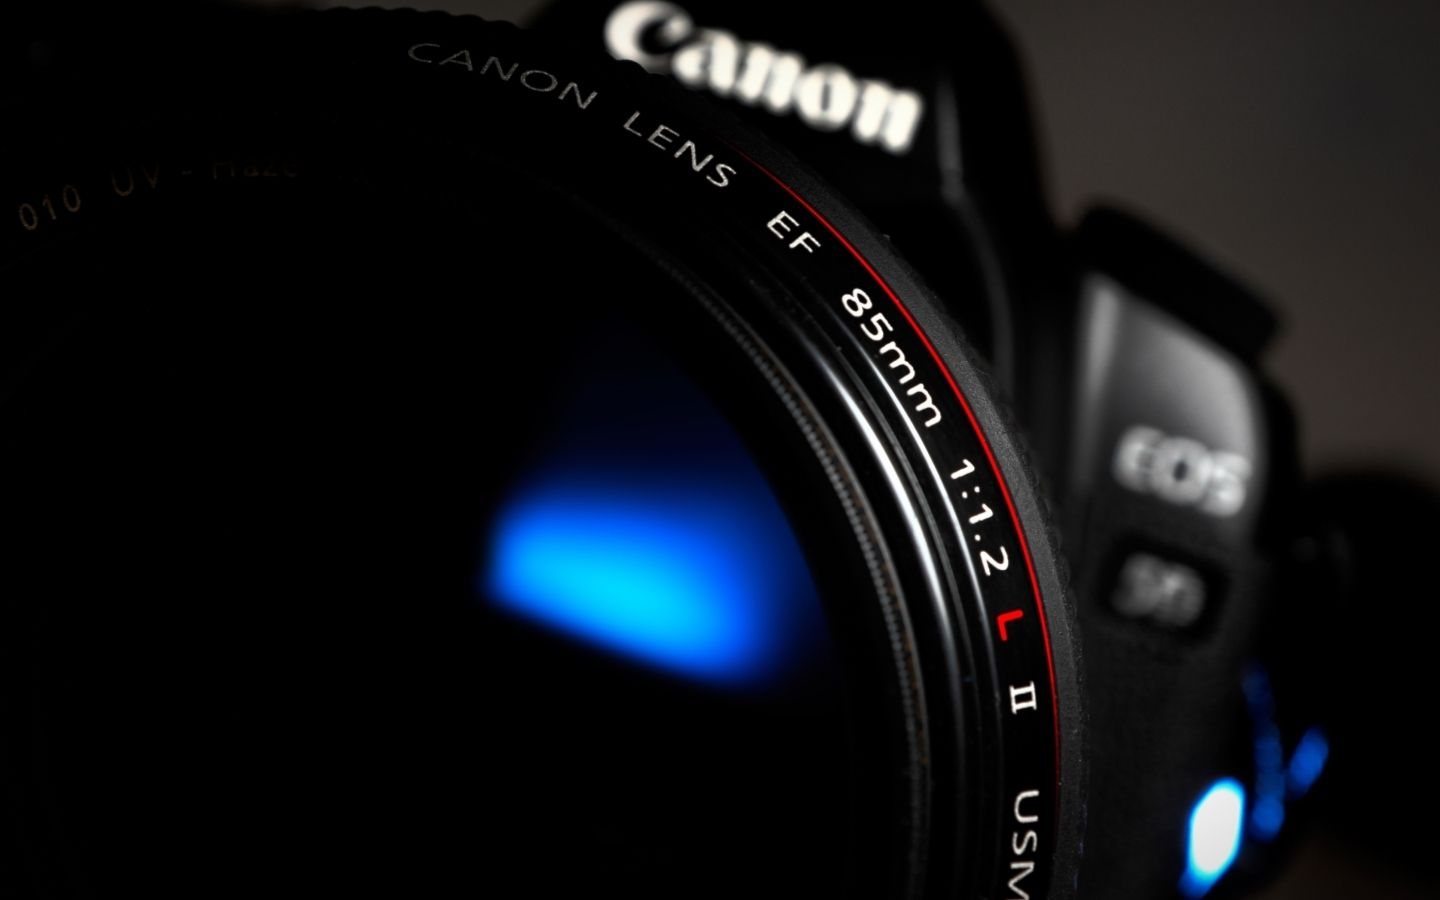 Canon Lens Macbook Pro Wallpaper Hd Macbook Pro Wallpaper